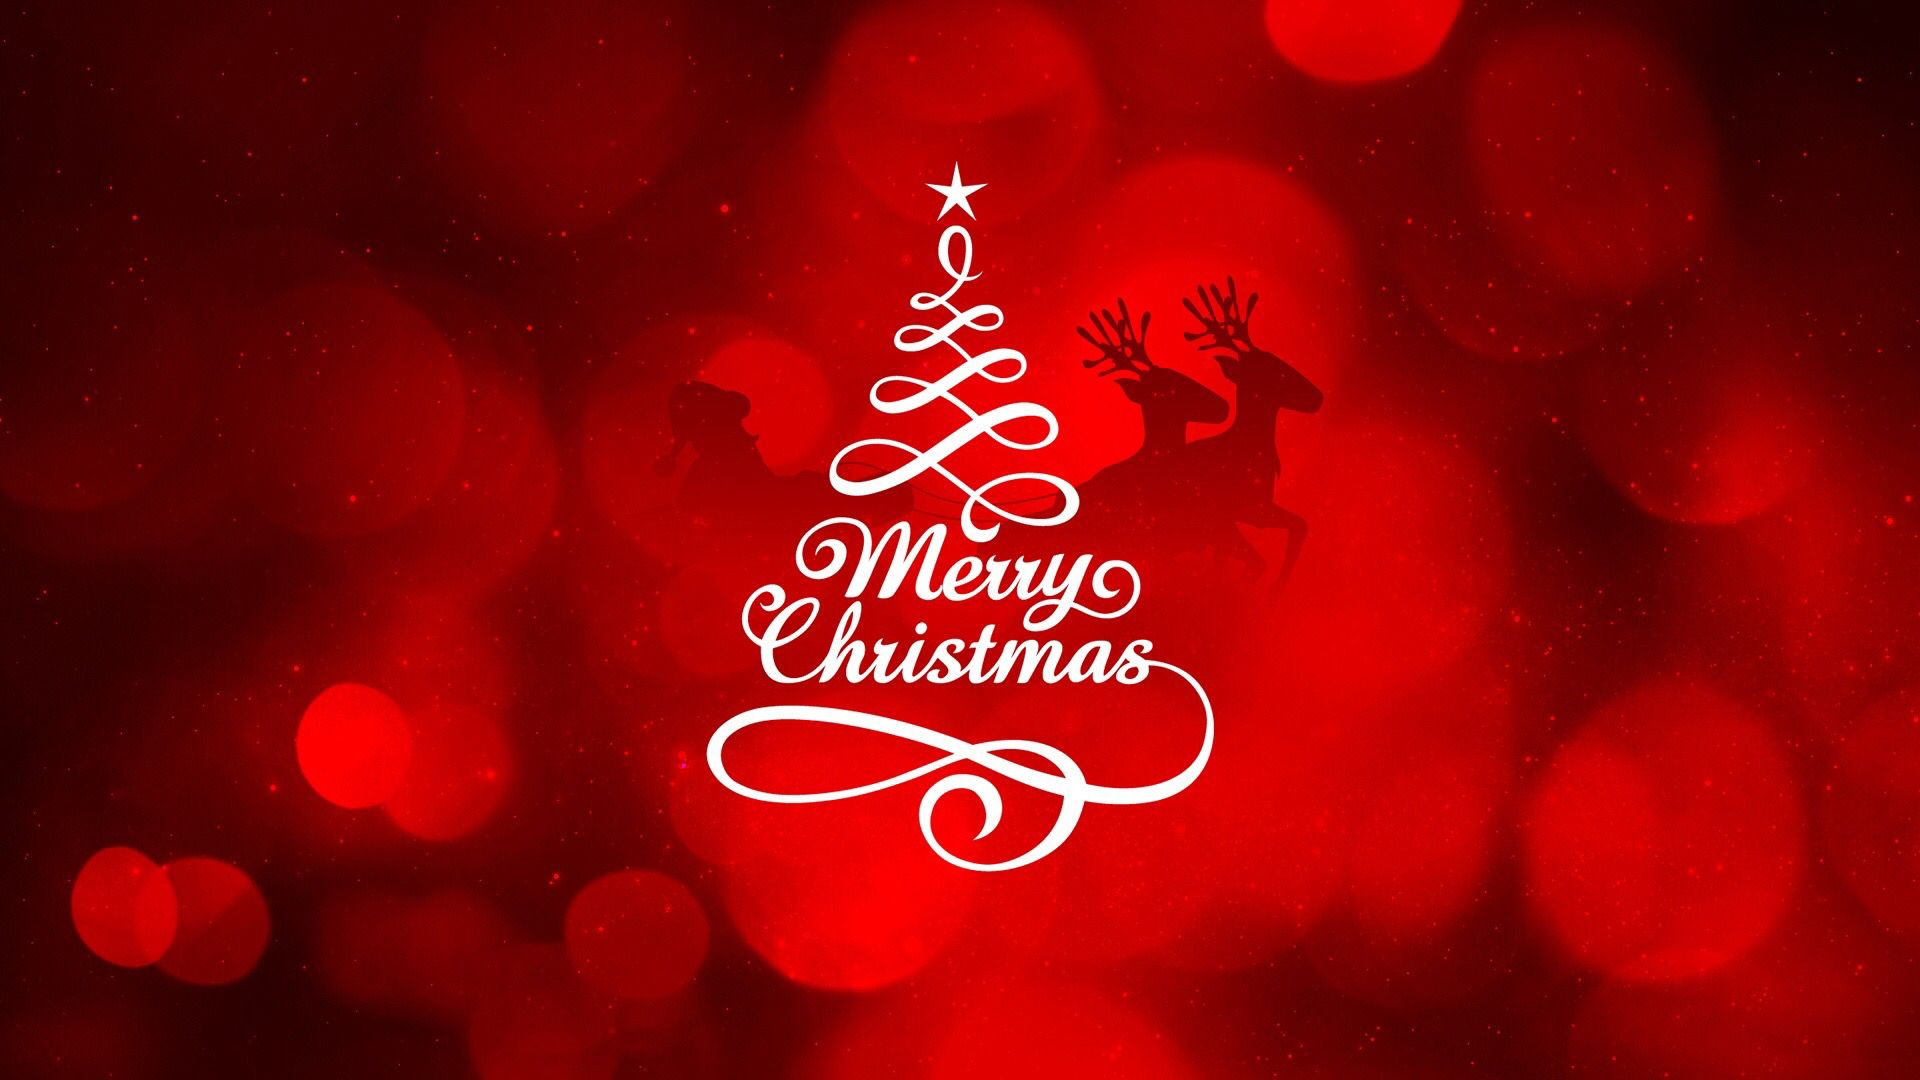 Merry Christmas from the All In 1 Media Team. Have a joyous holiday season!